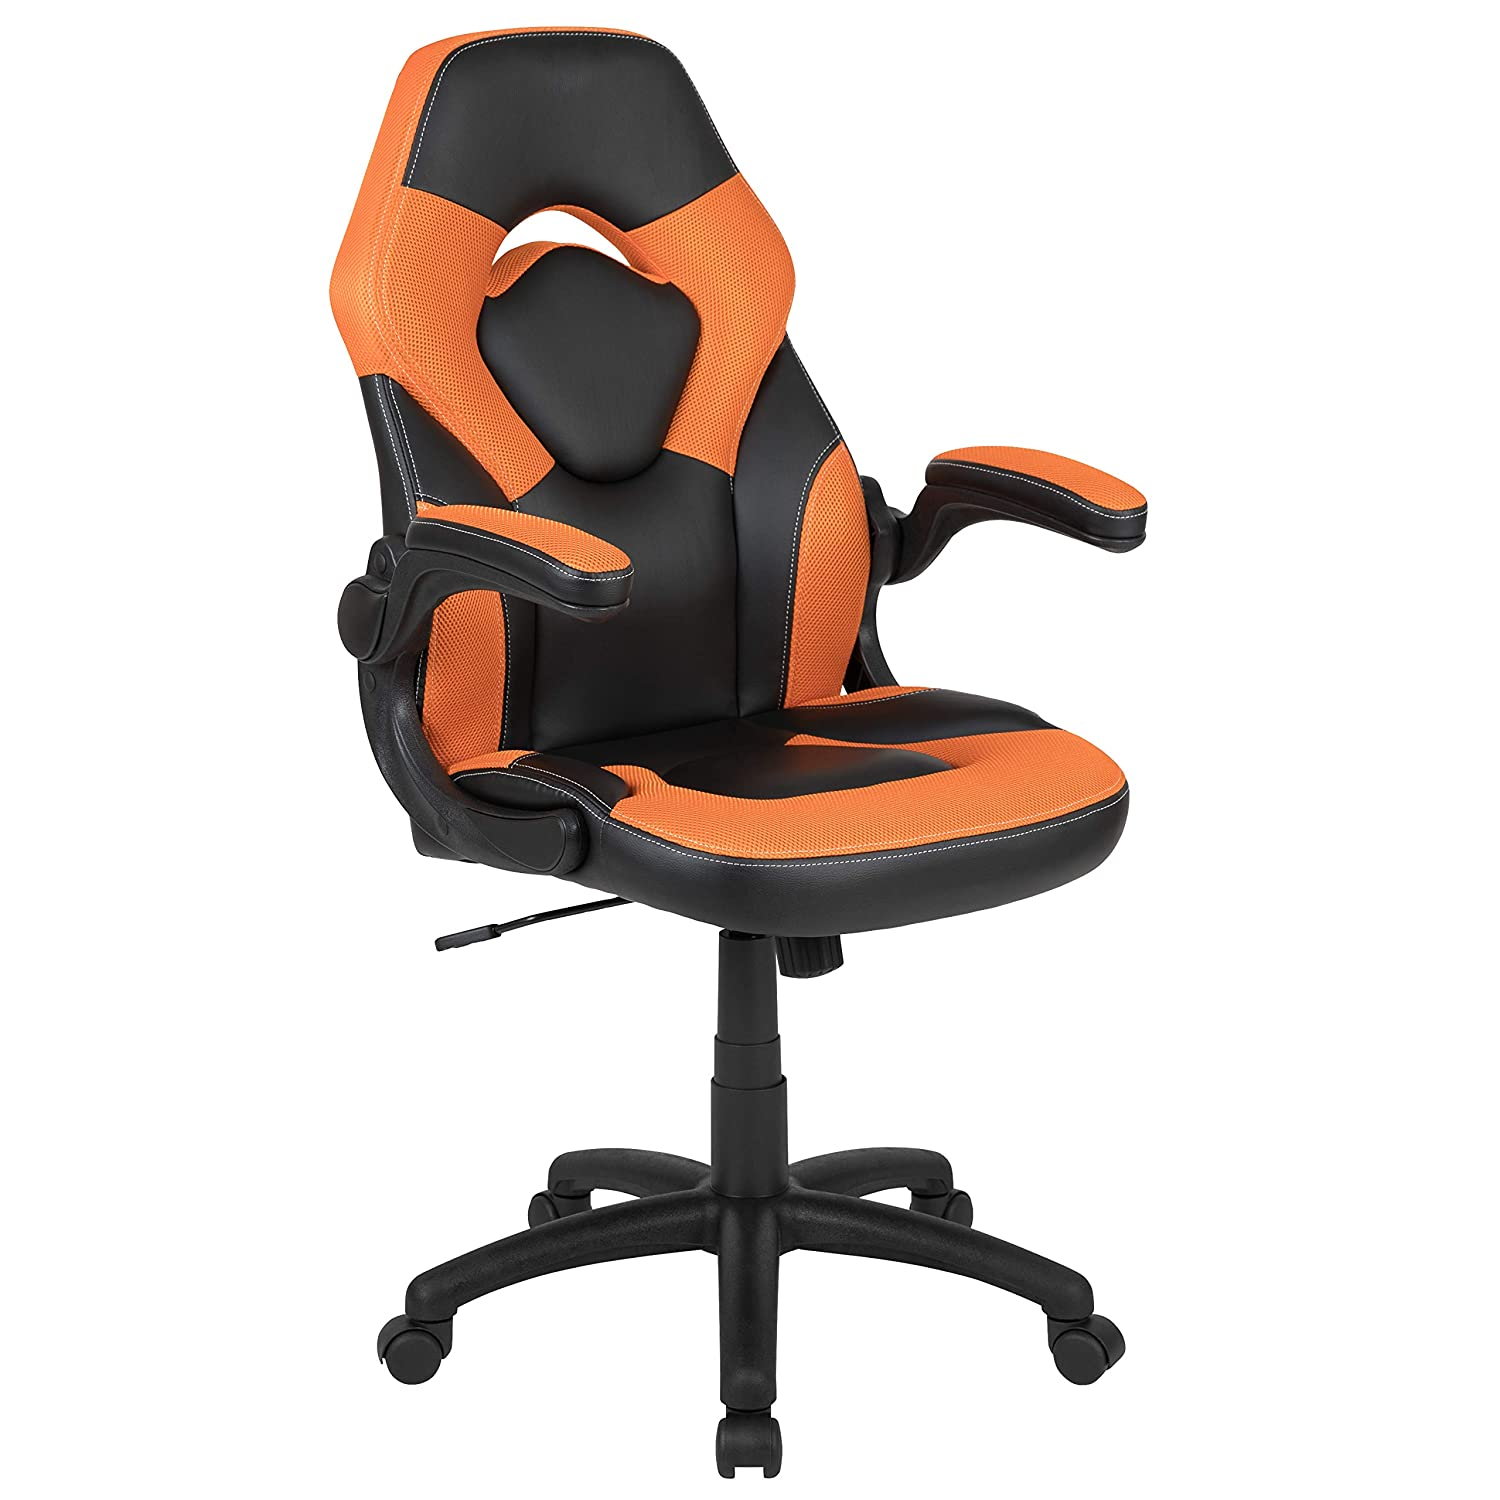 Flash Furniture X10 Gaming Chair Racing Office Ergonomic Computer PC Adjustable Swivel Chair with Flip-up Arms, Orange Black LeatherSoft